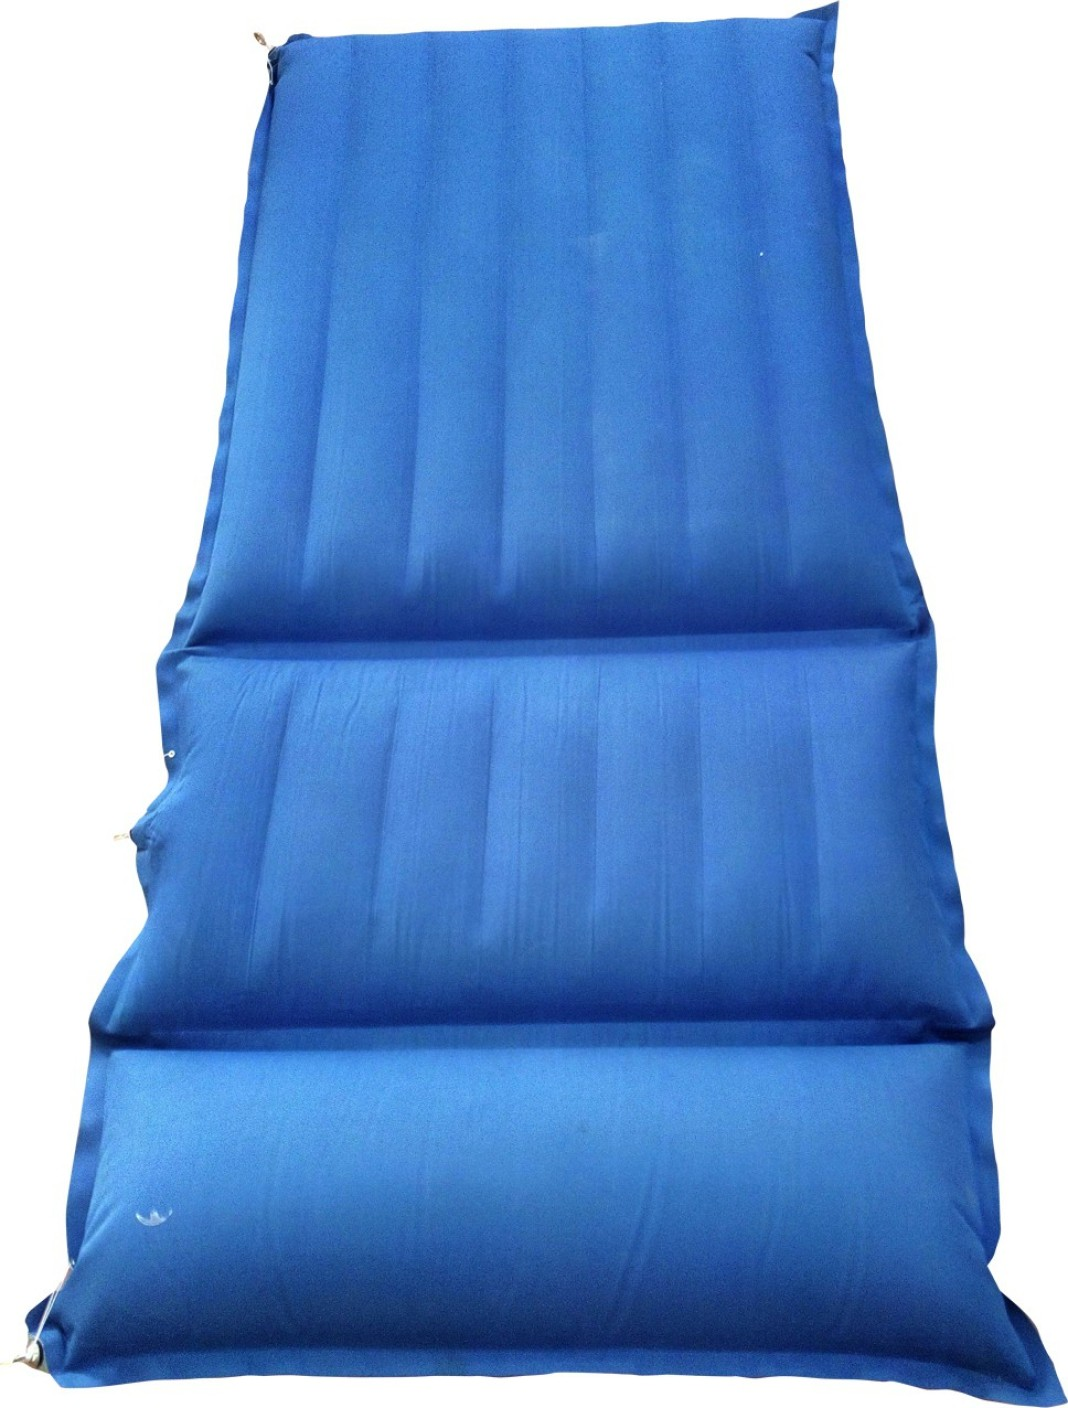 Healthgenie Water Bed Inflatable Mattress Price In India